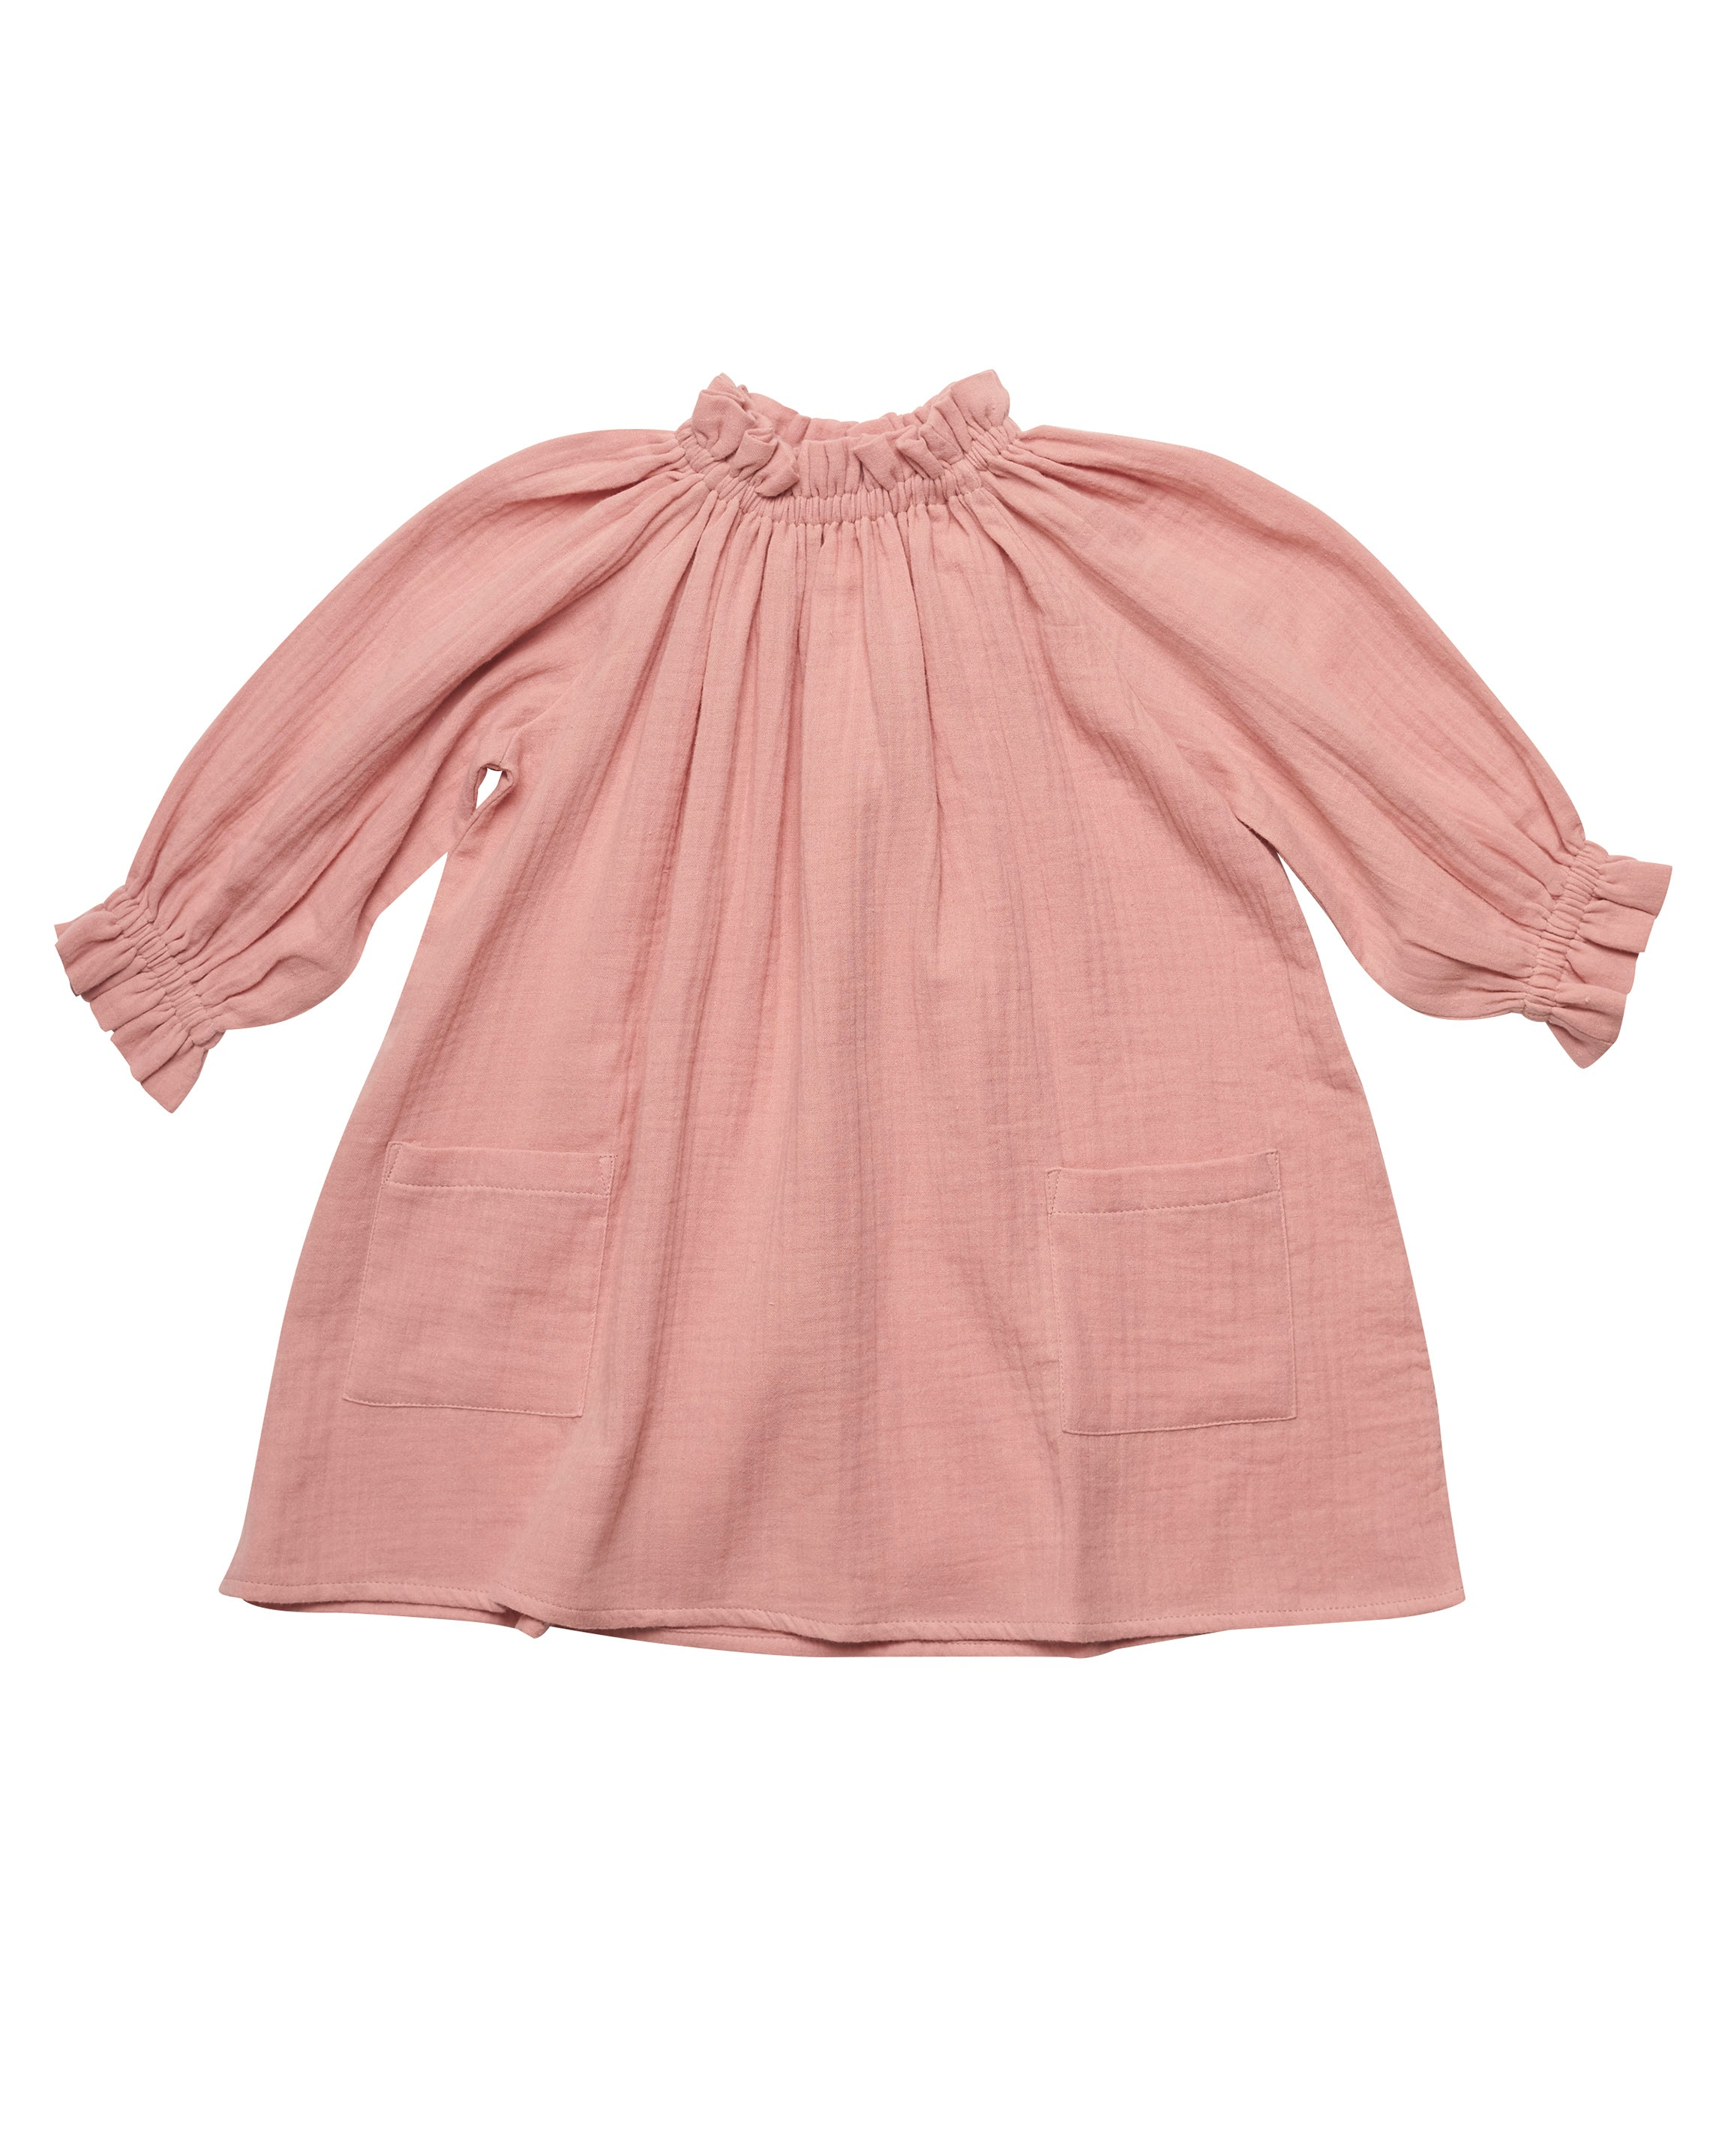 Liilu Oana Kid's Dress Rose | Organic cotton gauze pink | BIEN BIEN